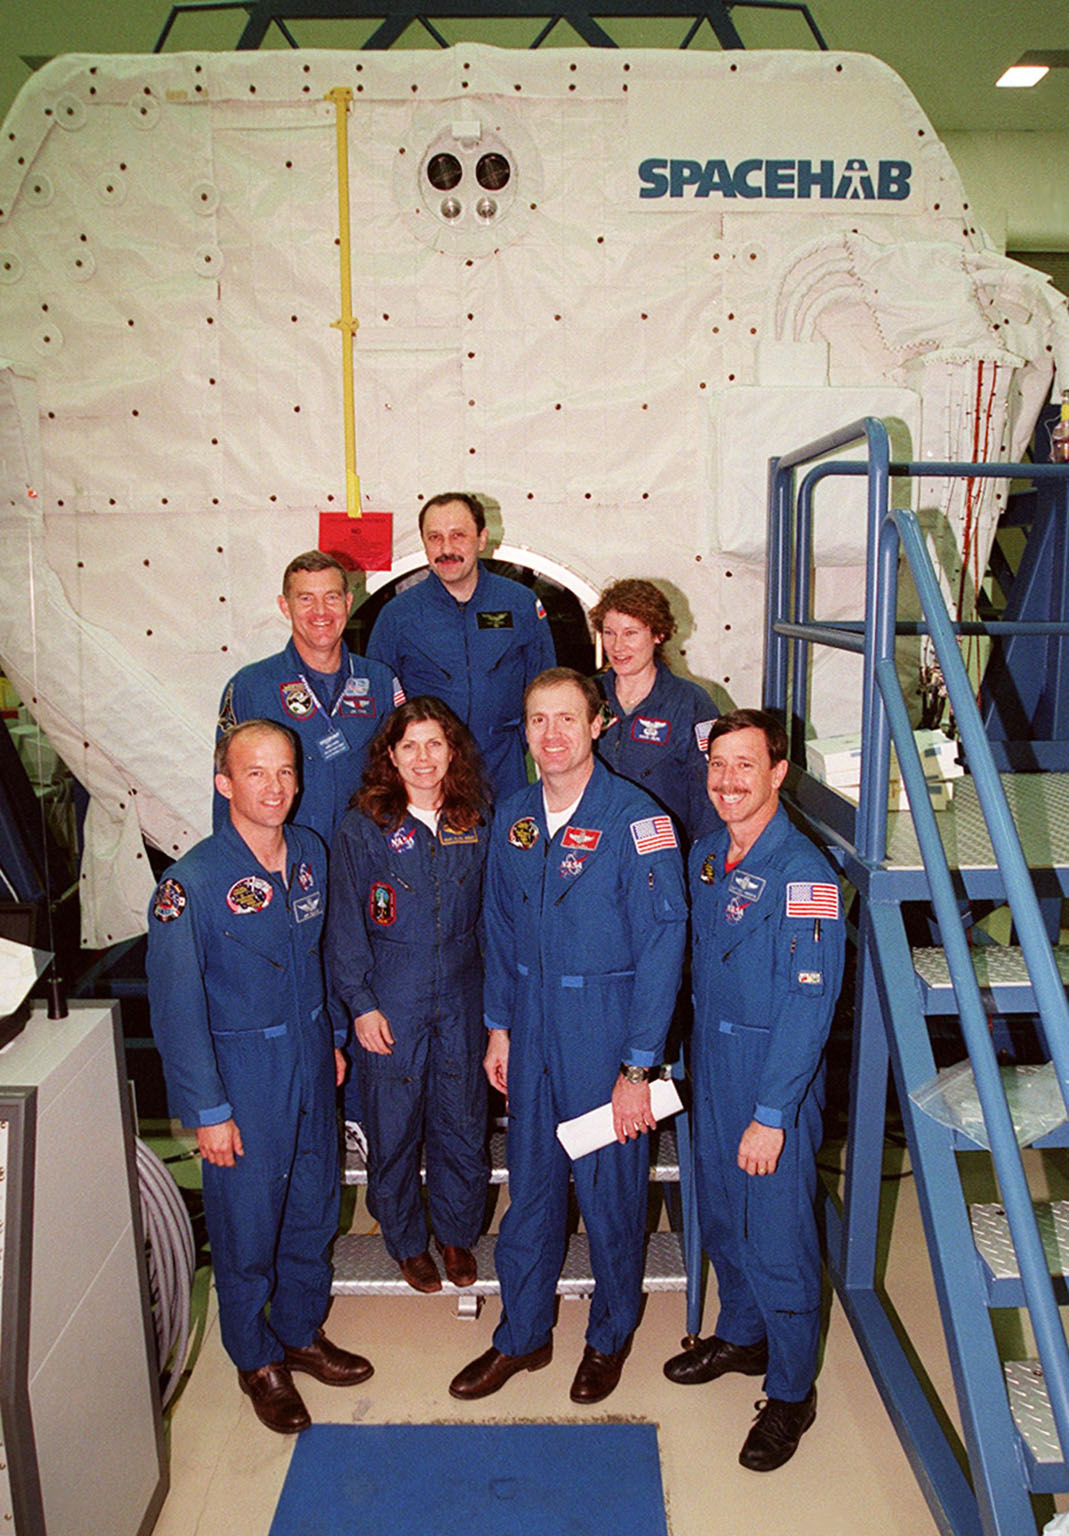 KENNEDY SPACE CENTER, FLA. -- The newly formed crew of STS-101 pose in front of the Spacehab double module in the Space Station Processing Facility. In the foreground from left are Mission Specialists Jeffrey Williams and Mary Ellen Weber, Commander James Halsell and Pilot Scott Horowitz; in the back are Mission Specialists James Voss, Yuri Usachev of Russia and Susan Helms. The crew will be responsible for preparing the International Space Station for the arrival of the Zvezda Service Module, expected to be launched by Russia in July 2000. Also, the crew will conduct one space walk to perform maintenance on the Space Station and deliver logistics and supplies. This will be the third assembly flight for the Space Station. STS-101 is scheduled to launch no earlier than April 13 from Launch Pad 39A